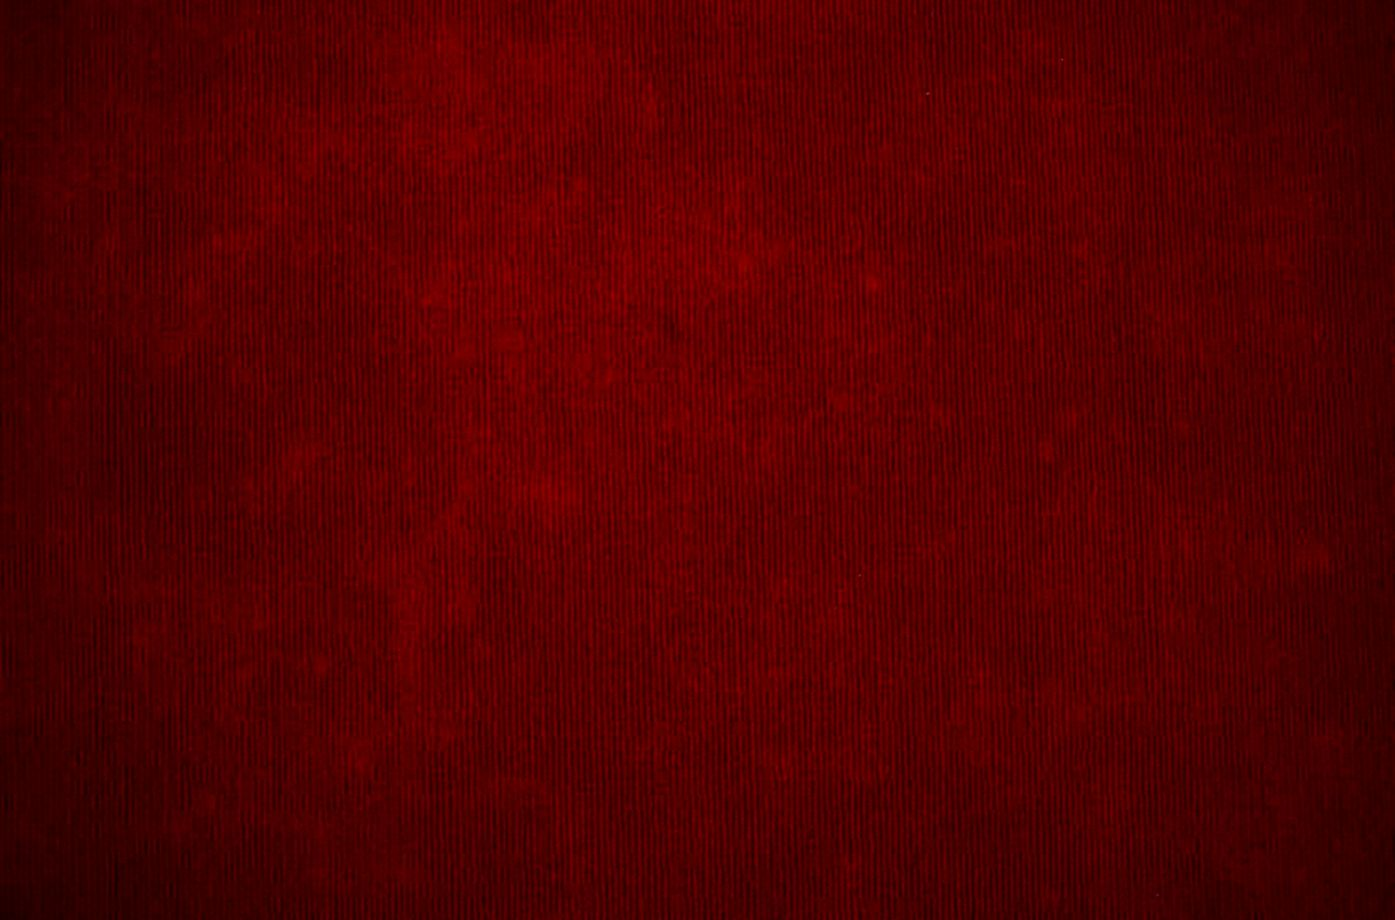 Velvet Textured Wallpaper